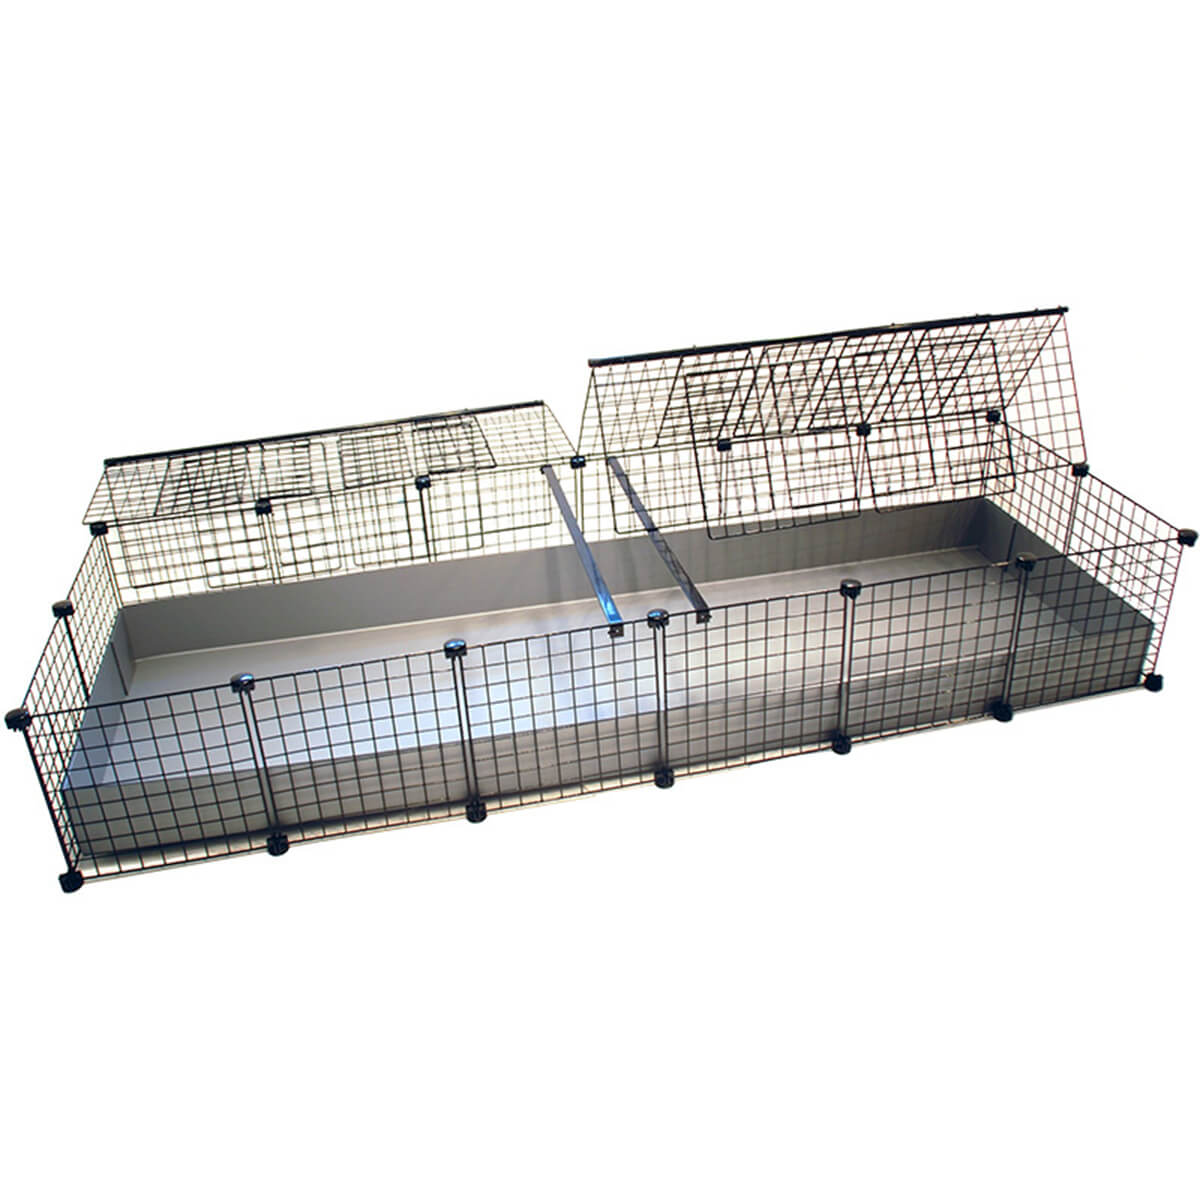 Black And Cream Bedding Jumbo (2x6 Grids) Covered - Standard Covered Cages - C&C ...